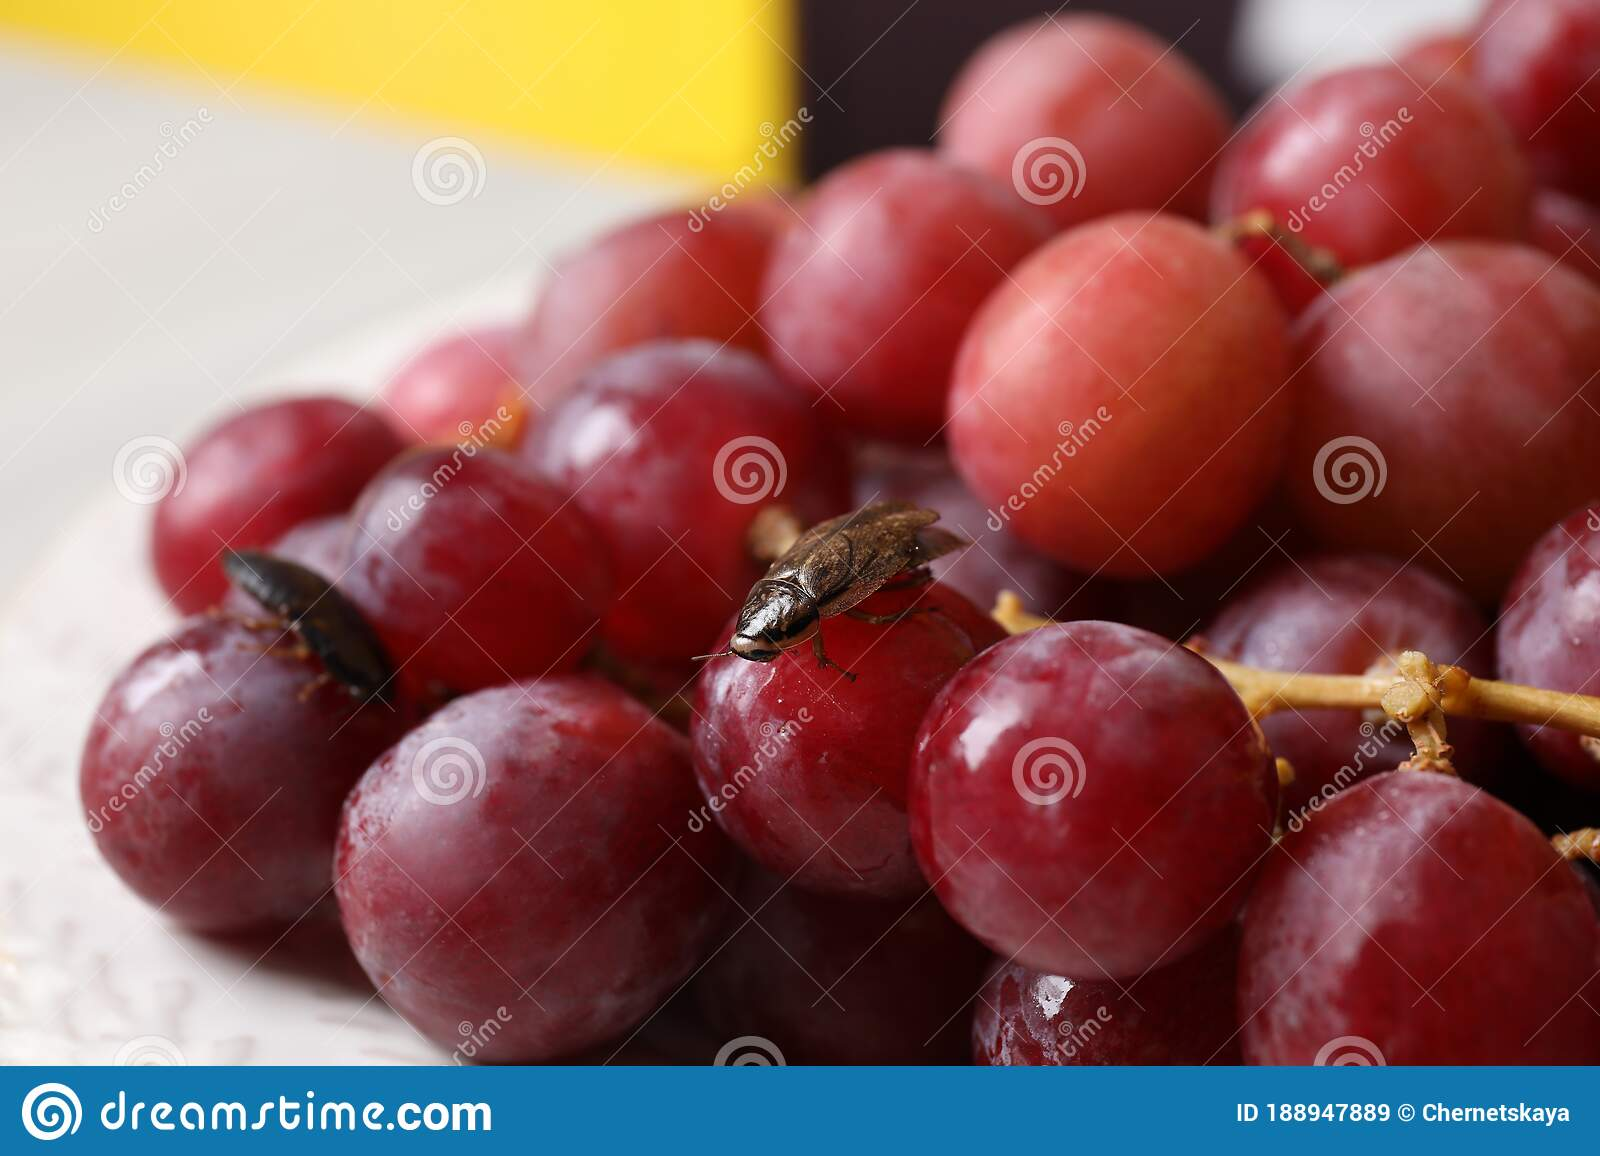 Cockroach On Grapes In Kitchen Pest Control Stock Image Of Harmful Disease 188947889